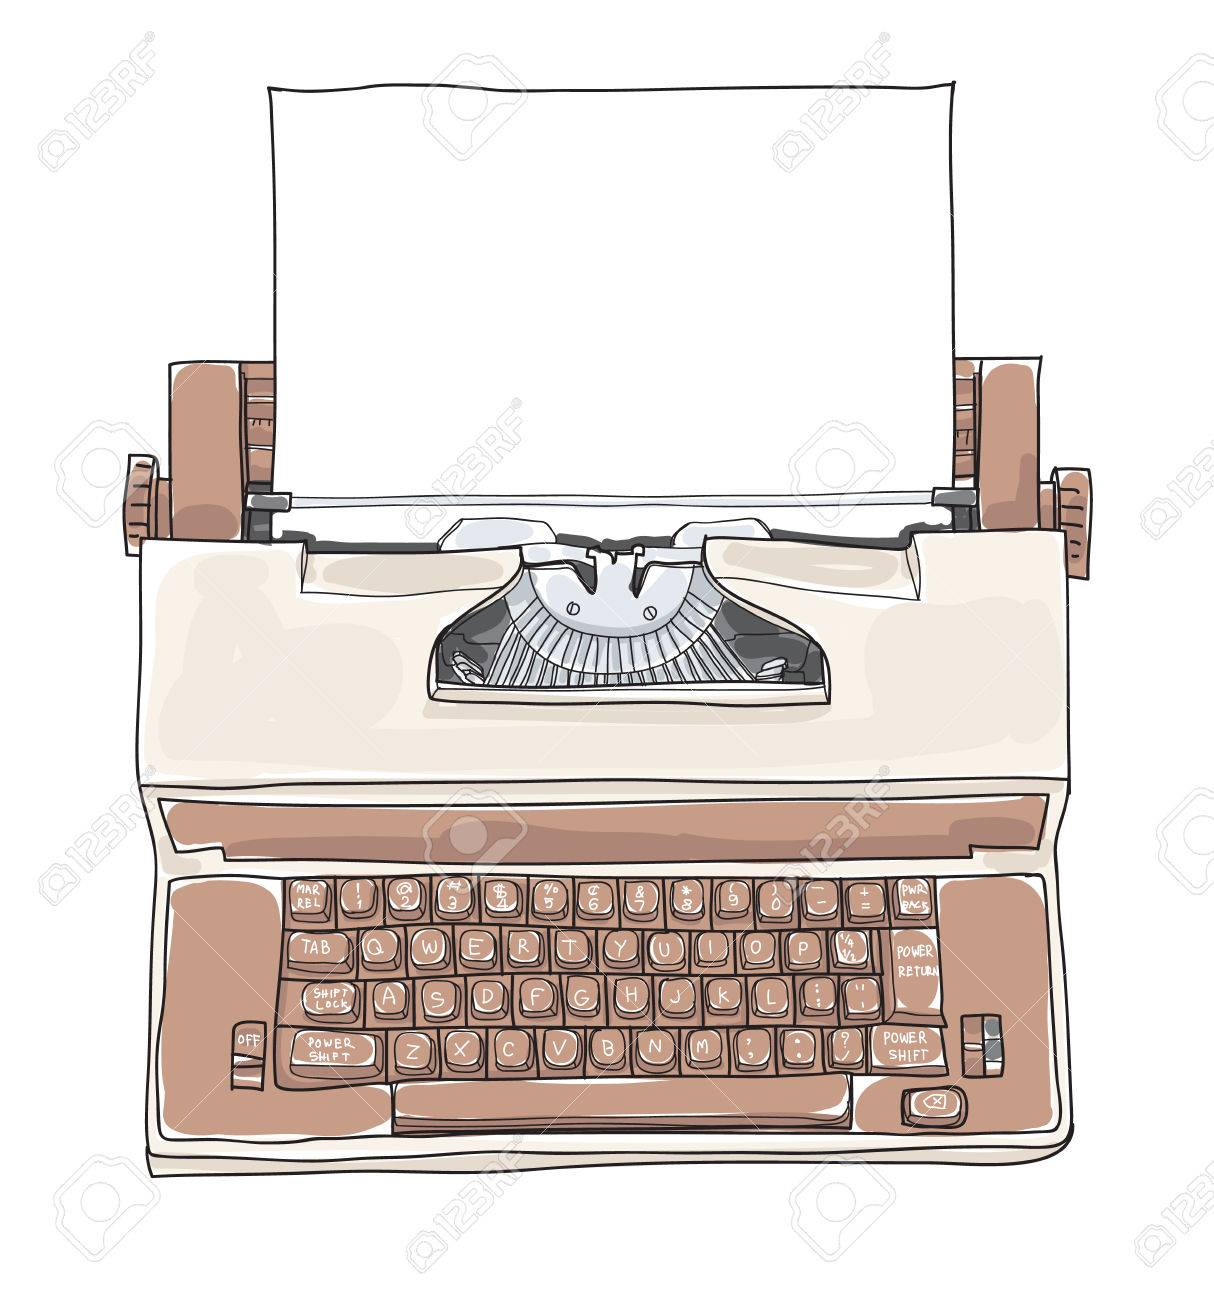 Image result for old typewriter clipart